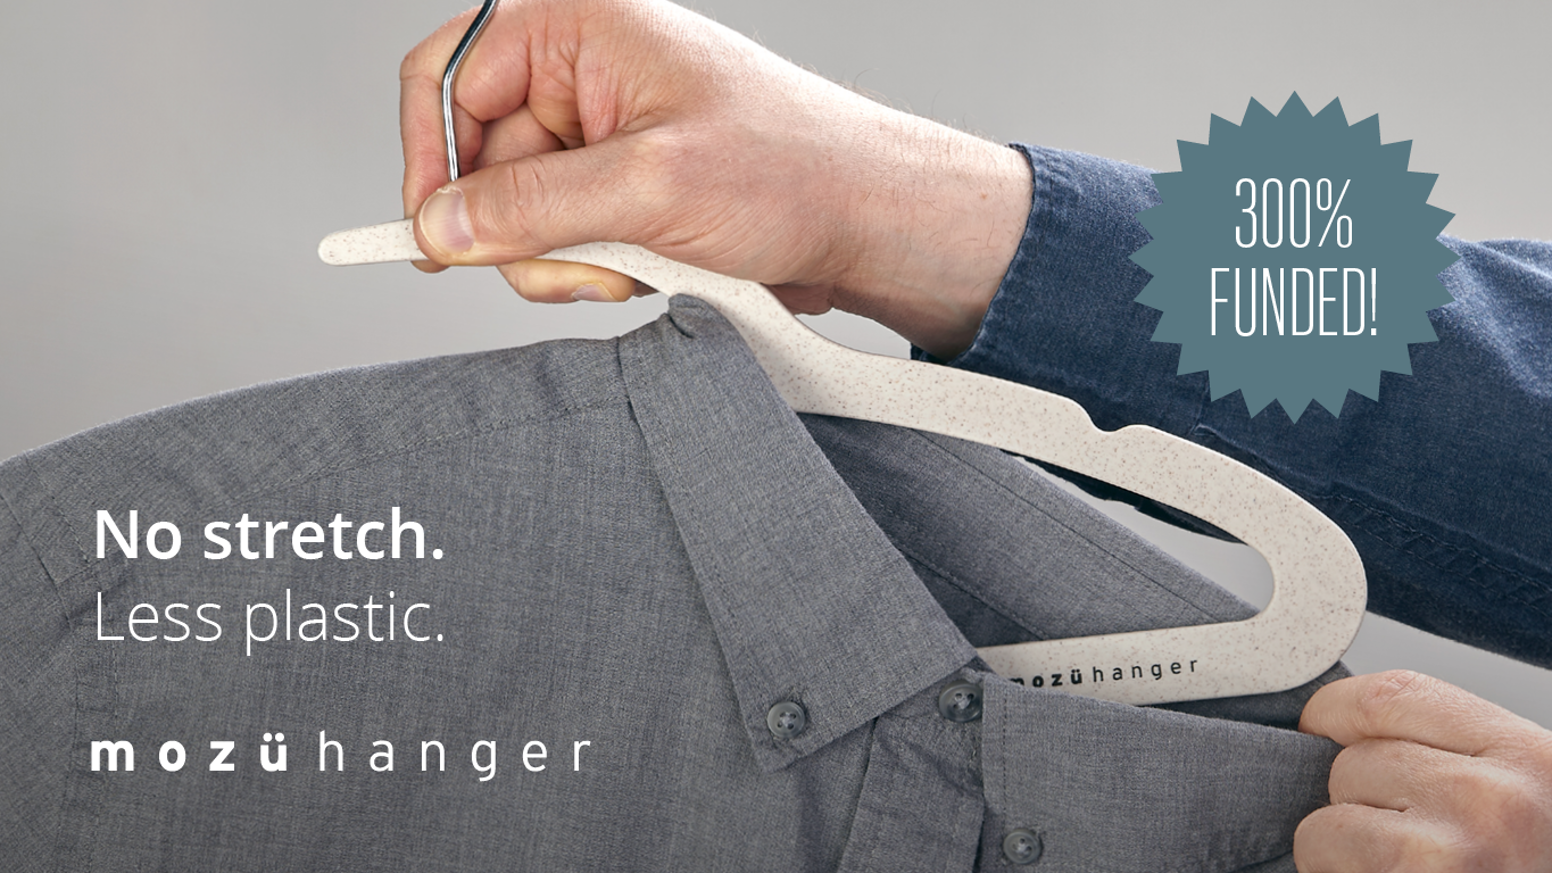 Slim, Earth-friendly hangers with an innovative notch that eliminates the stretching of collars.